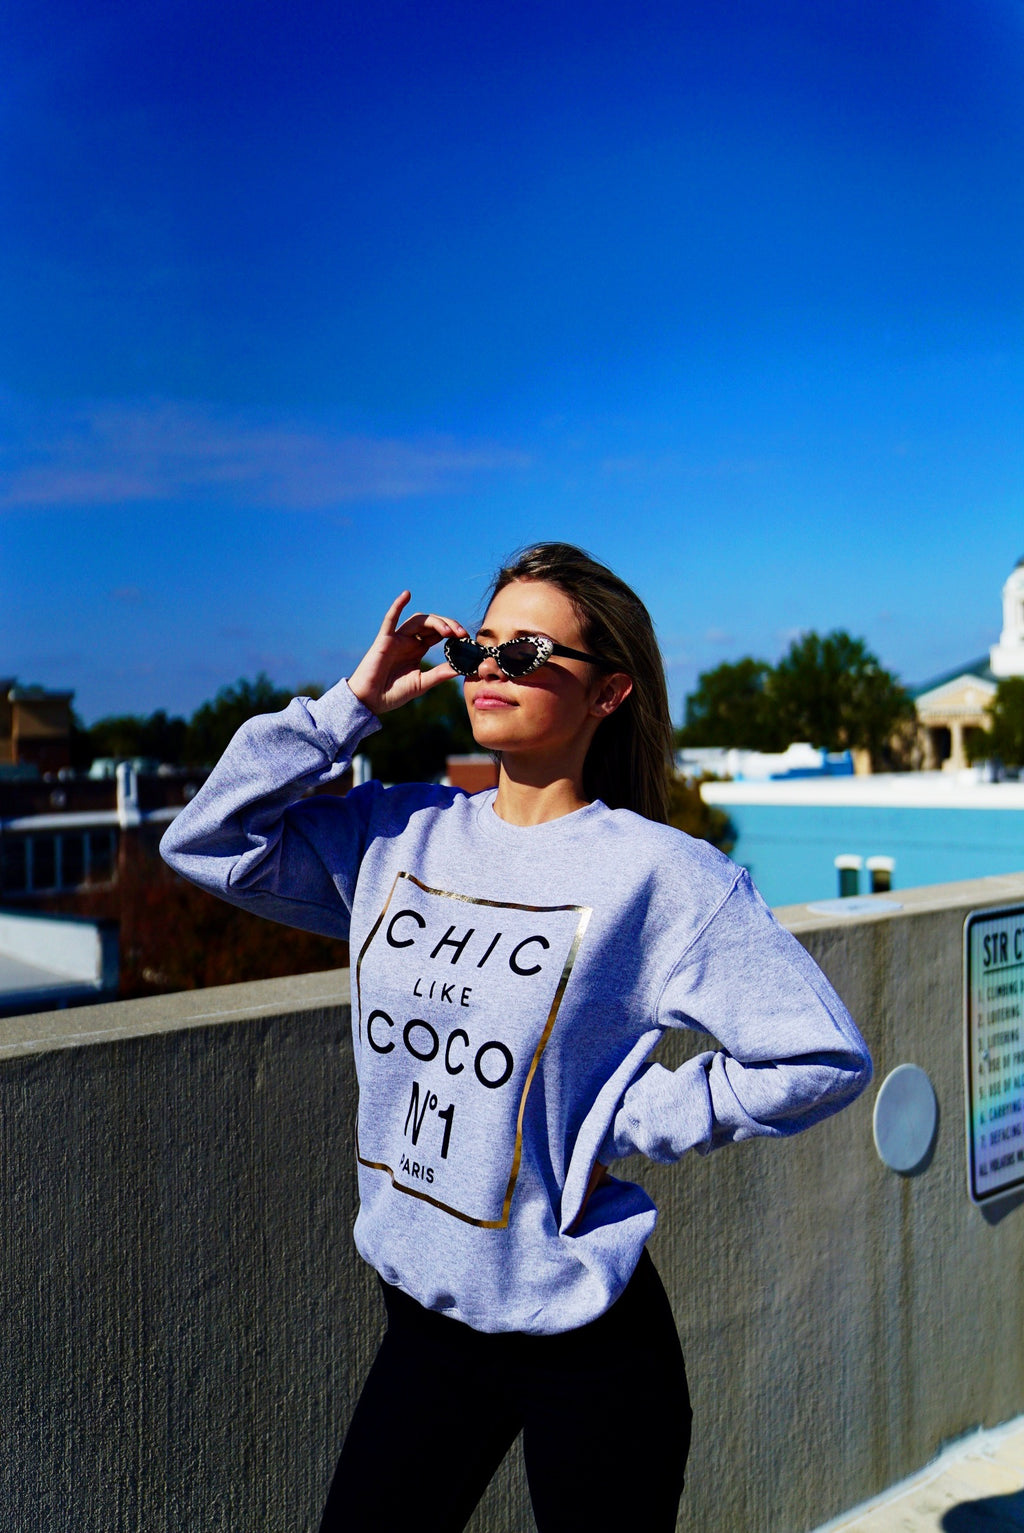 Chic Like Coco Sweatshirt